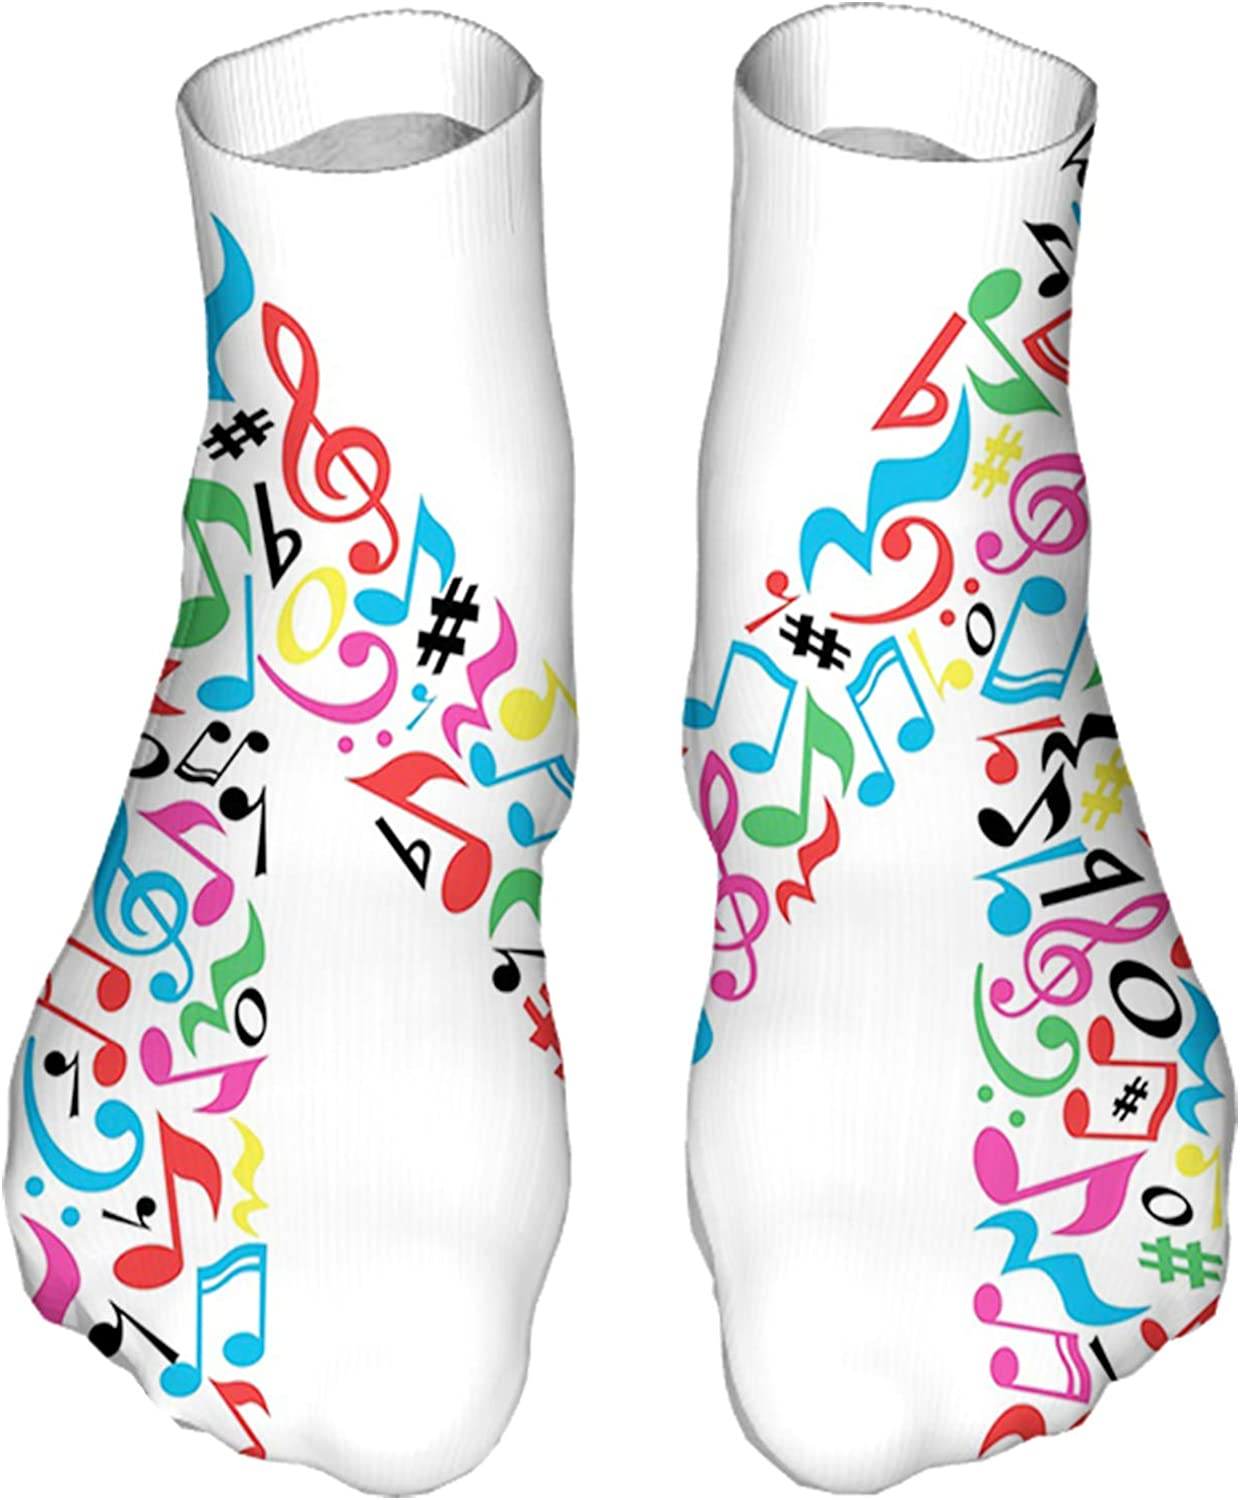 Men's and Women's Fun Socks Printed Cool Novelty Funny Socks,Major and Minor Notes and Other Musical Elements